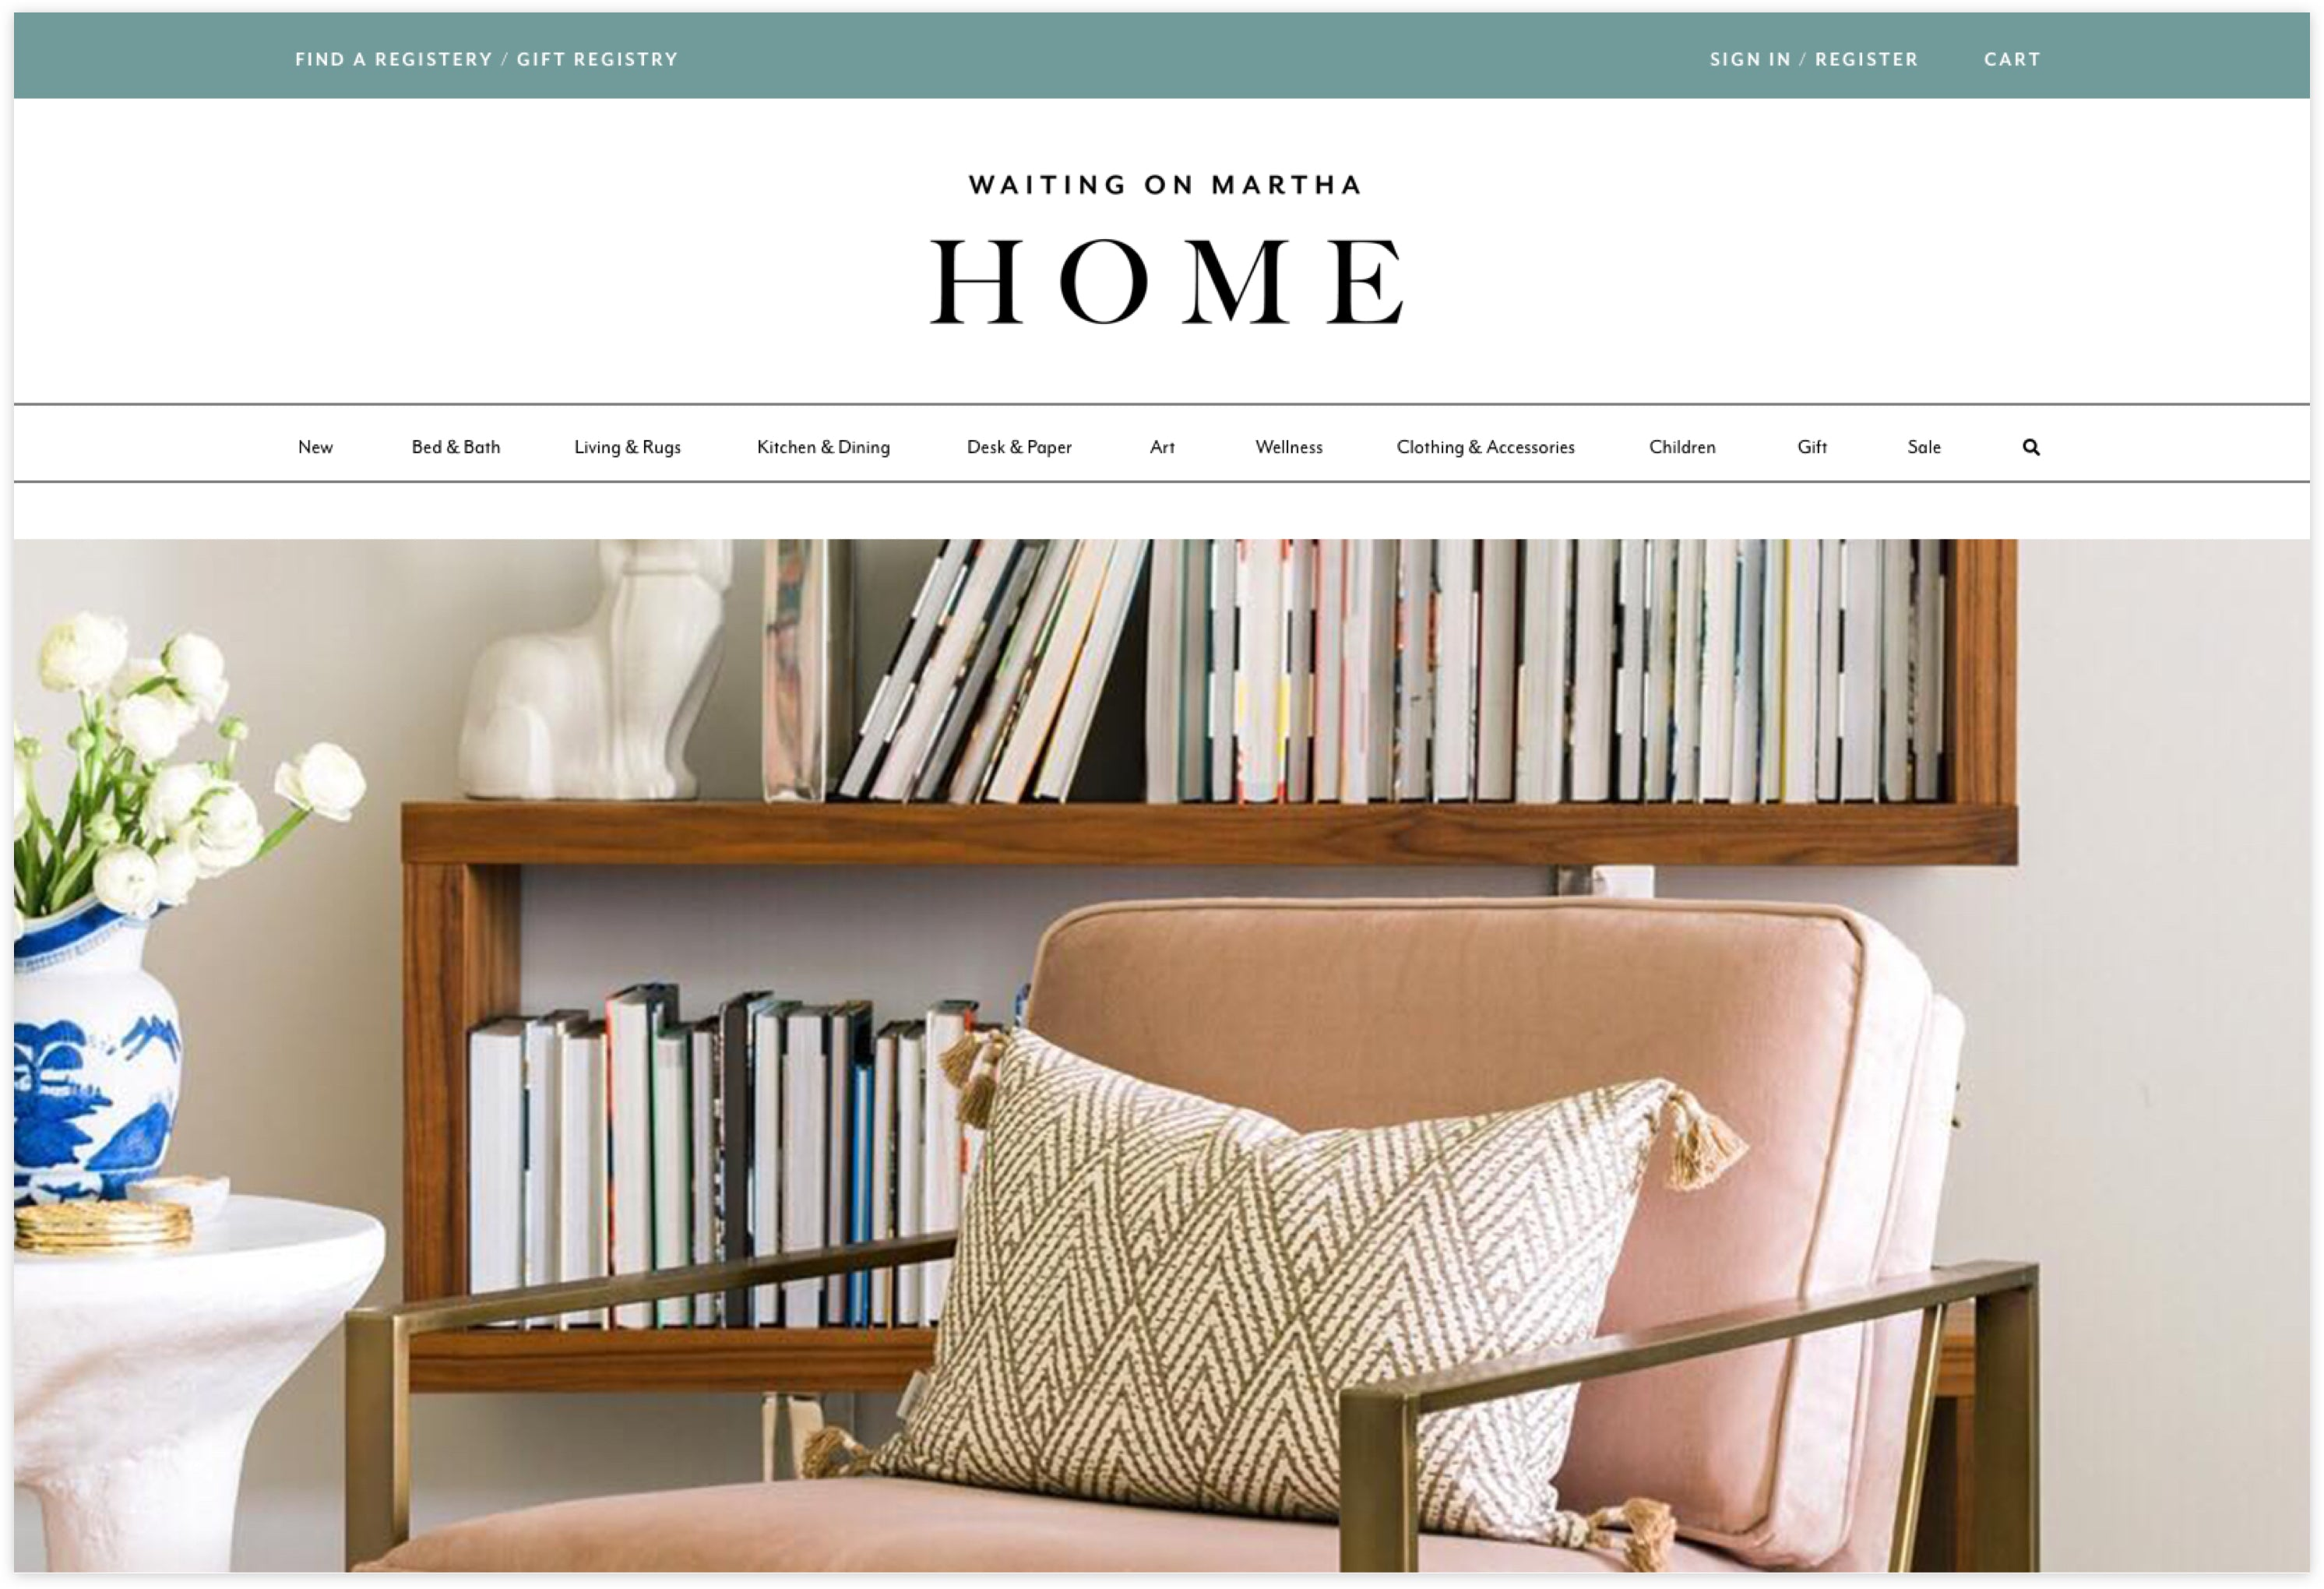 Waiting on Martha Homepage, Custom Shopify Site, Lifestyle and Chic Aesthetic